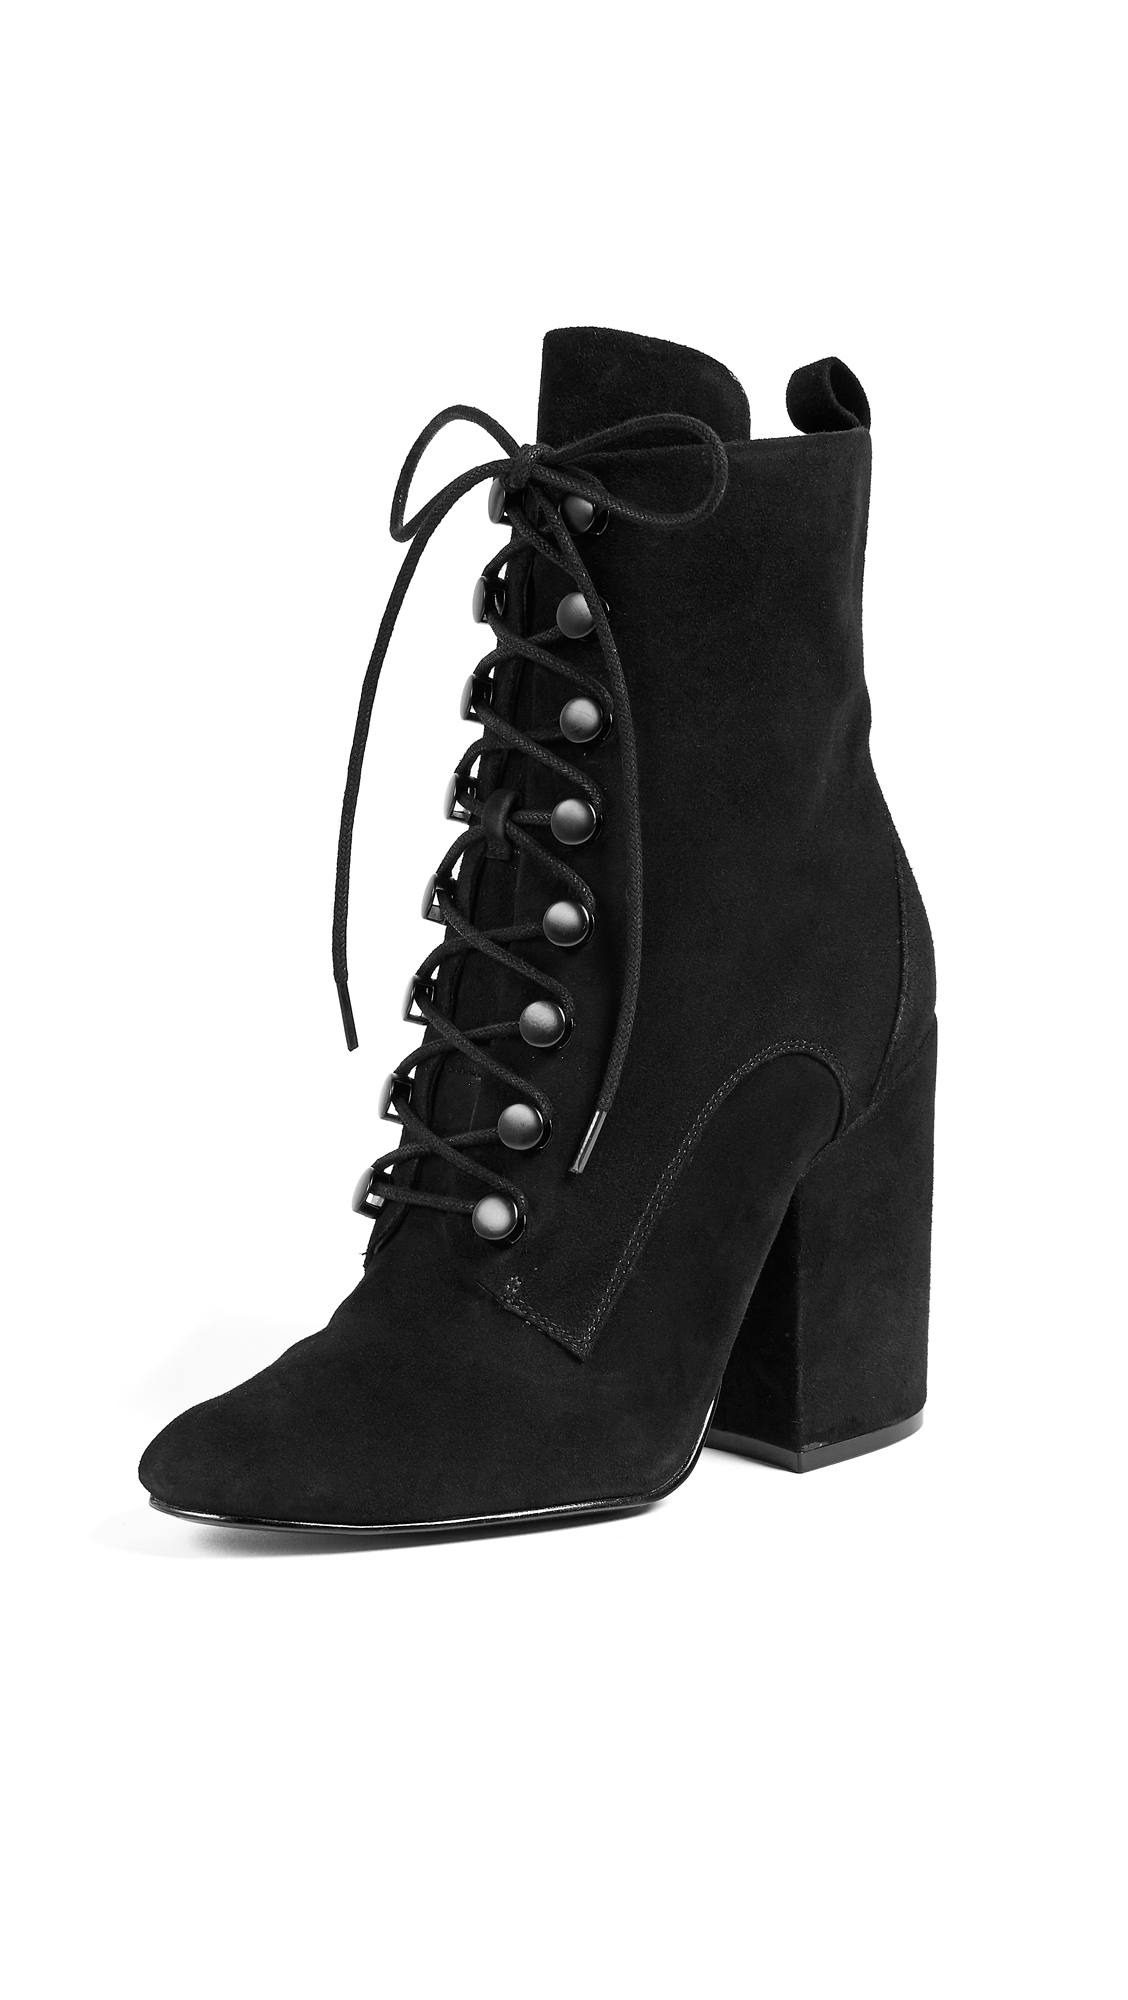 KENDALL + KYLIE Bridget Lace Up Booties - Black